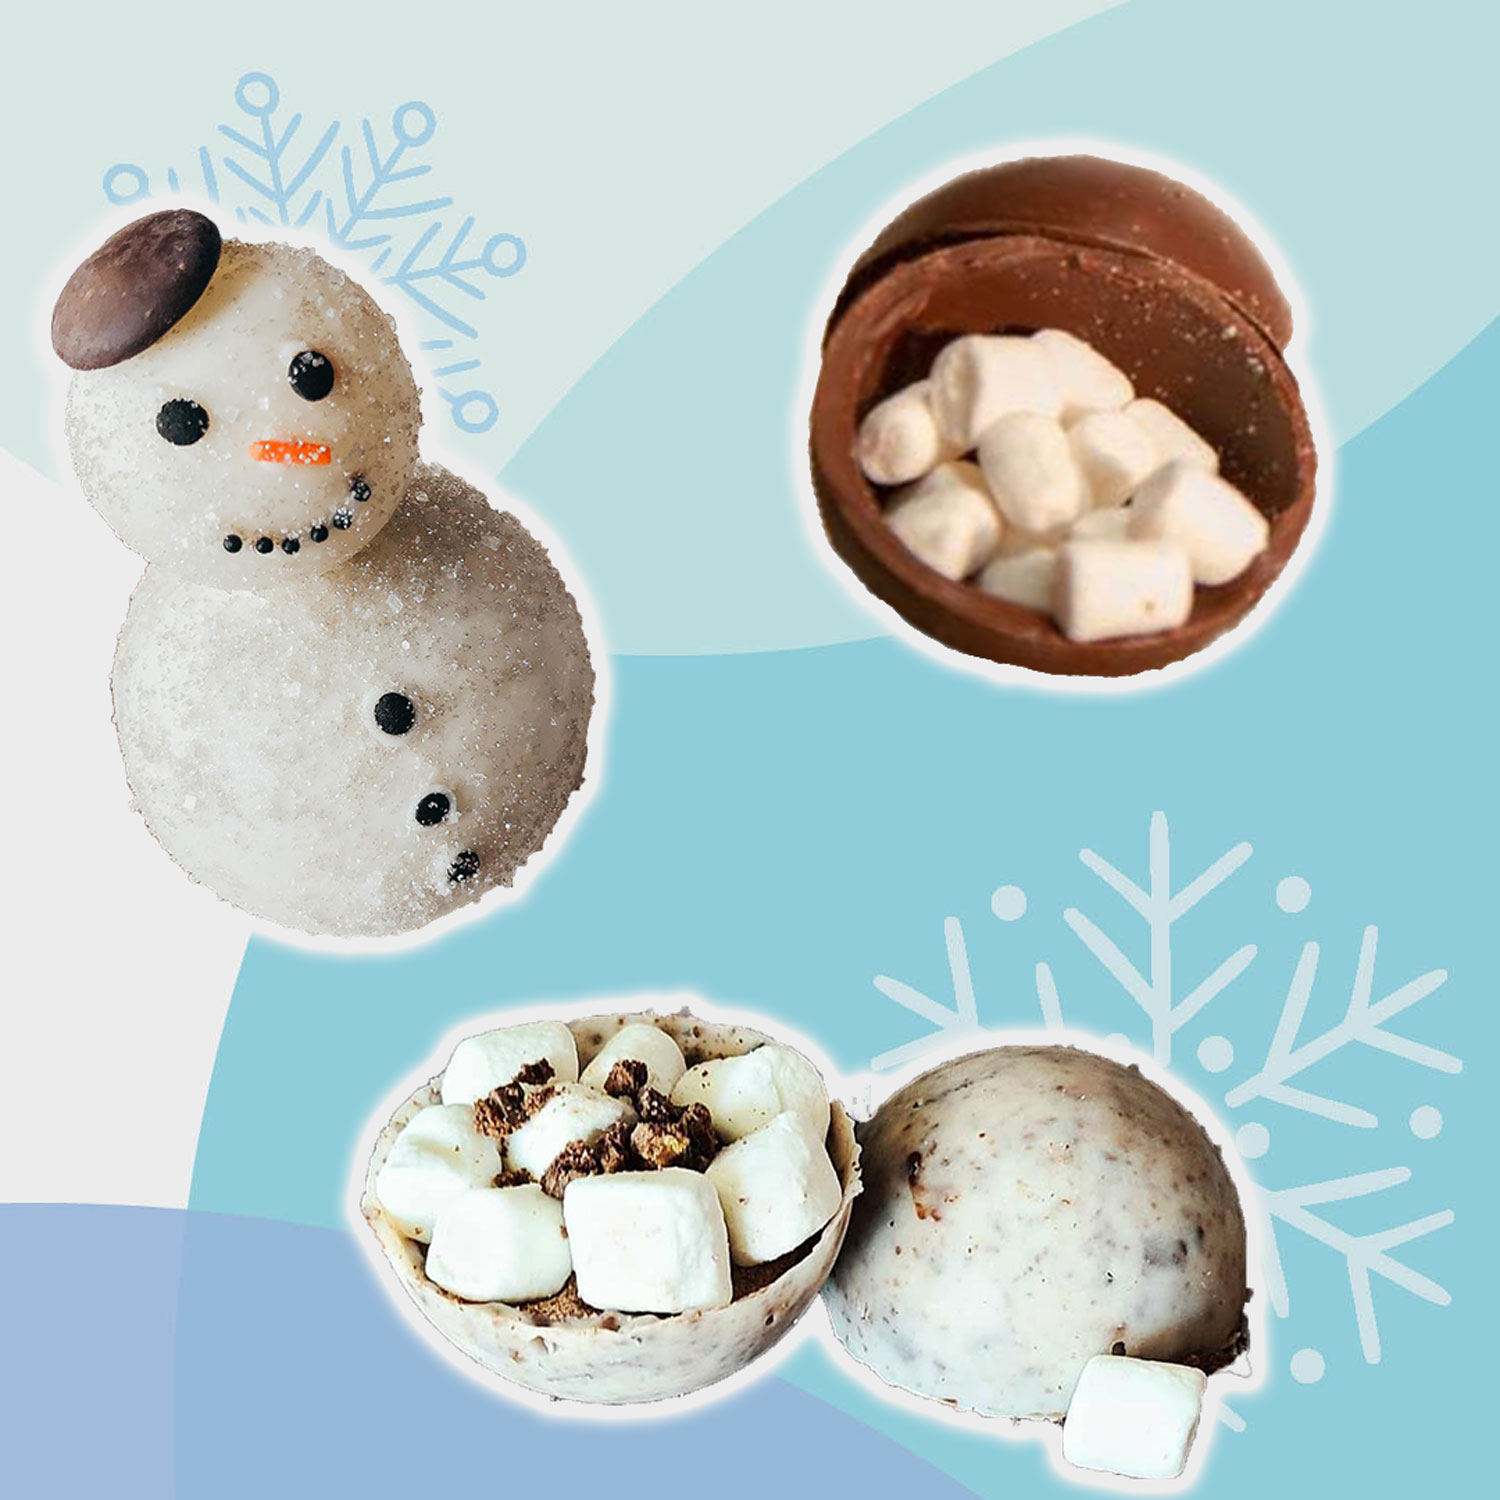 Hot Cocoa Bombs Are Taking Over the Internet—Here Are 5 of Our Favorites You Can Buy Online